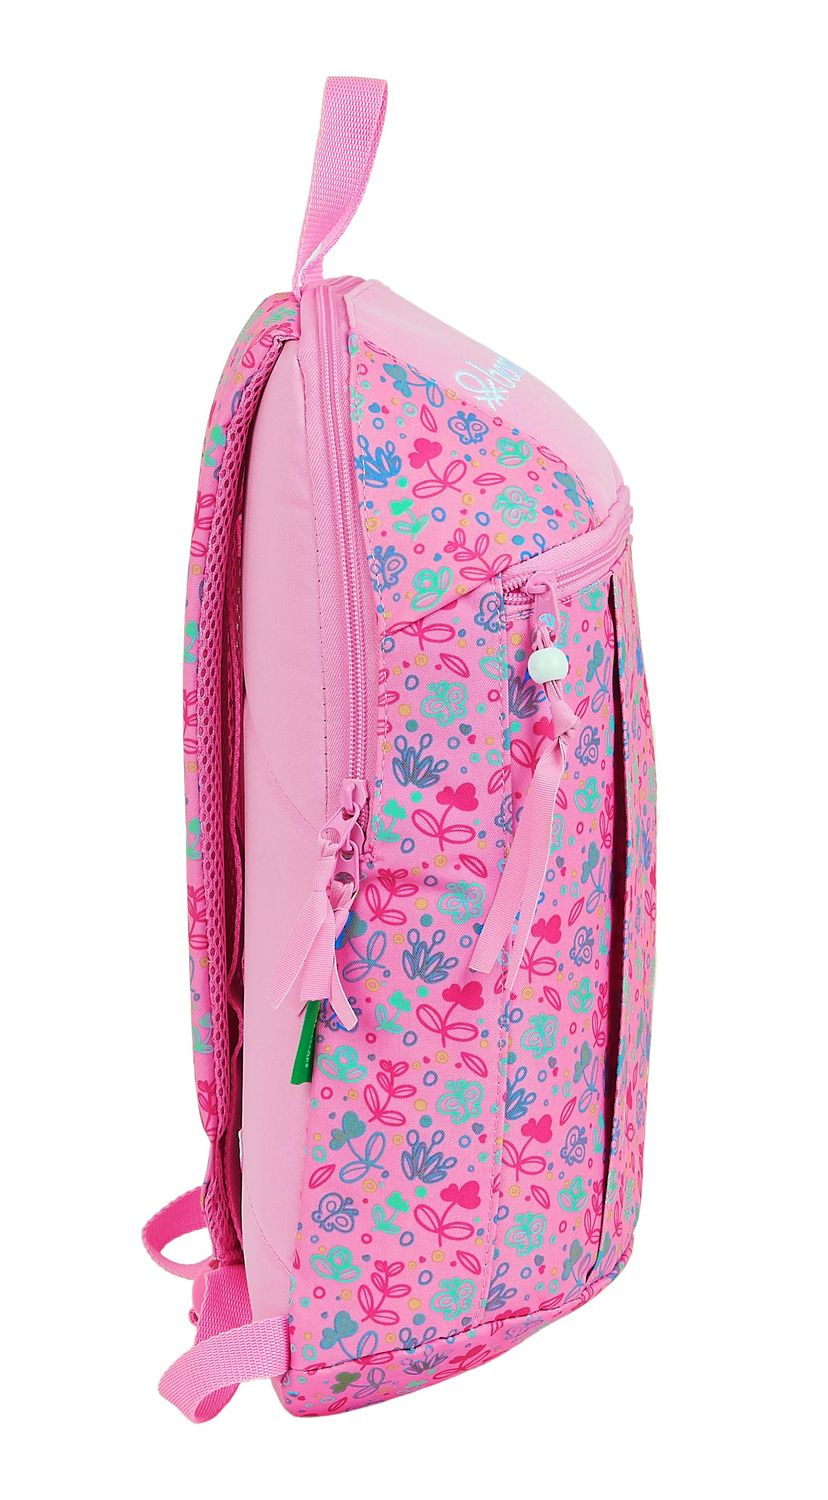 BENETTON BUTTERFLIES Backpack Rucksack 39cm – image 3